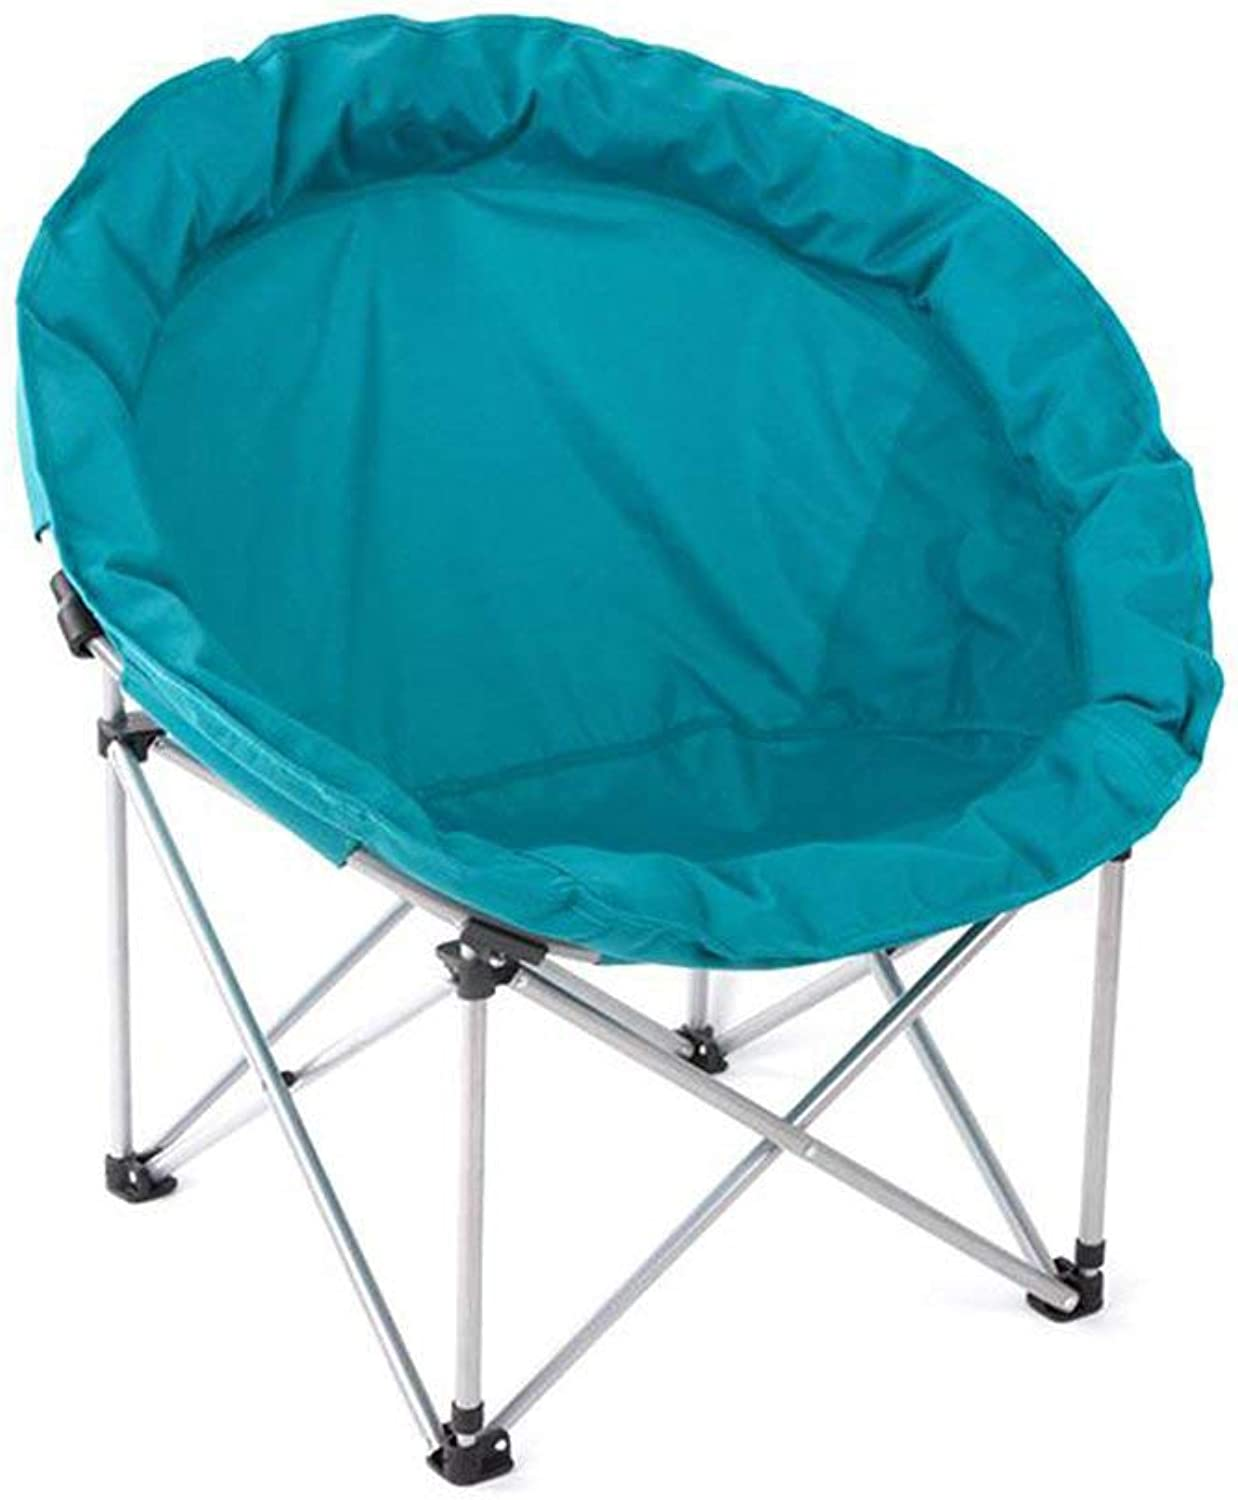 Zcxbhd Moon Chair Leisure Camping Bean Bag Chair- Holder Steel Frame Folding Padded Portable for with Festival Gift